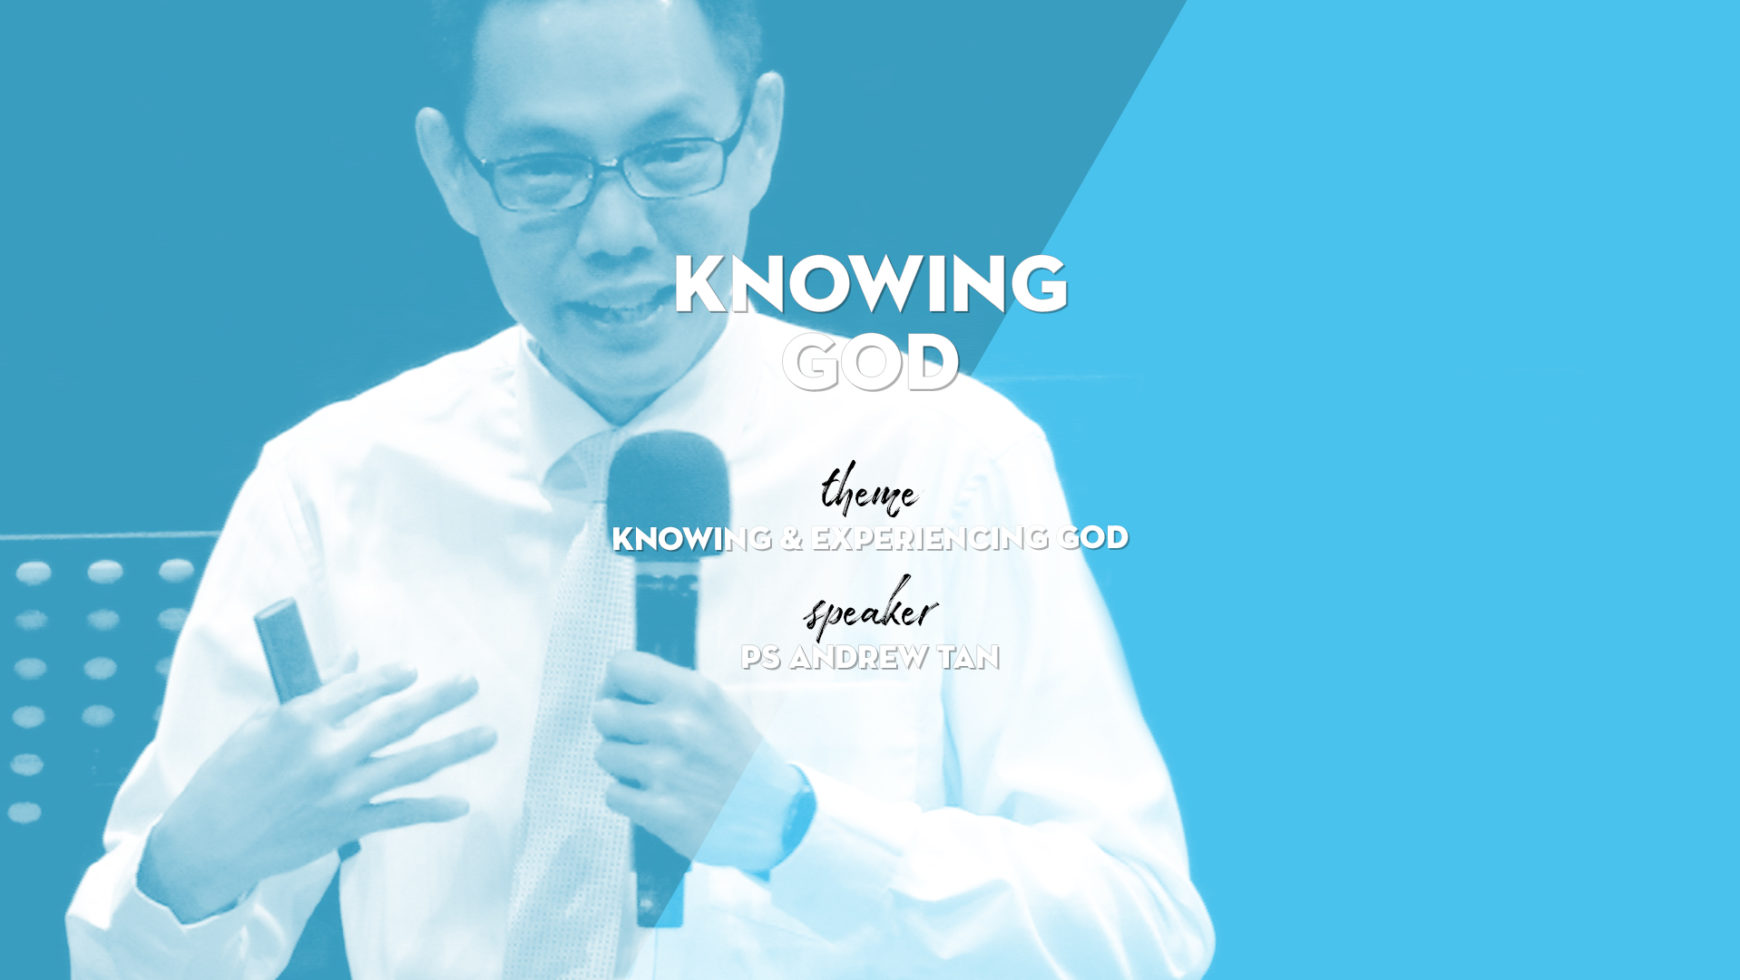 Knowing God (2 Peter 1:1-4)